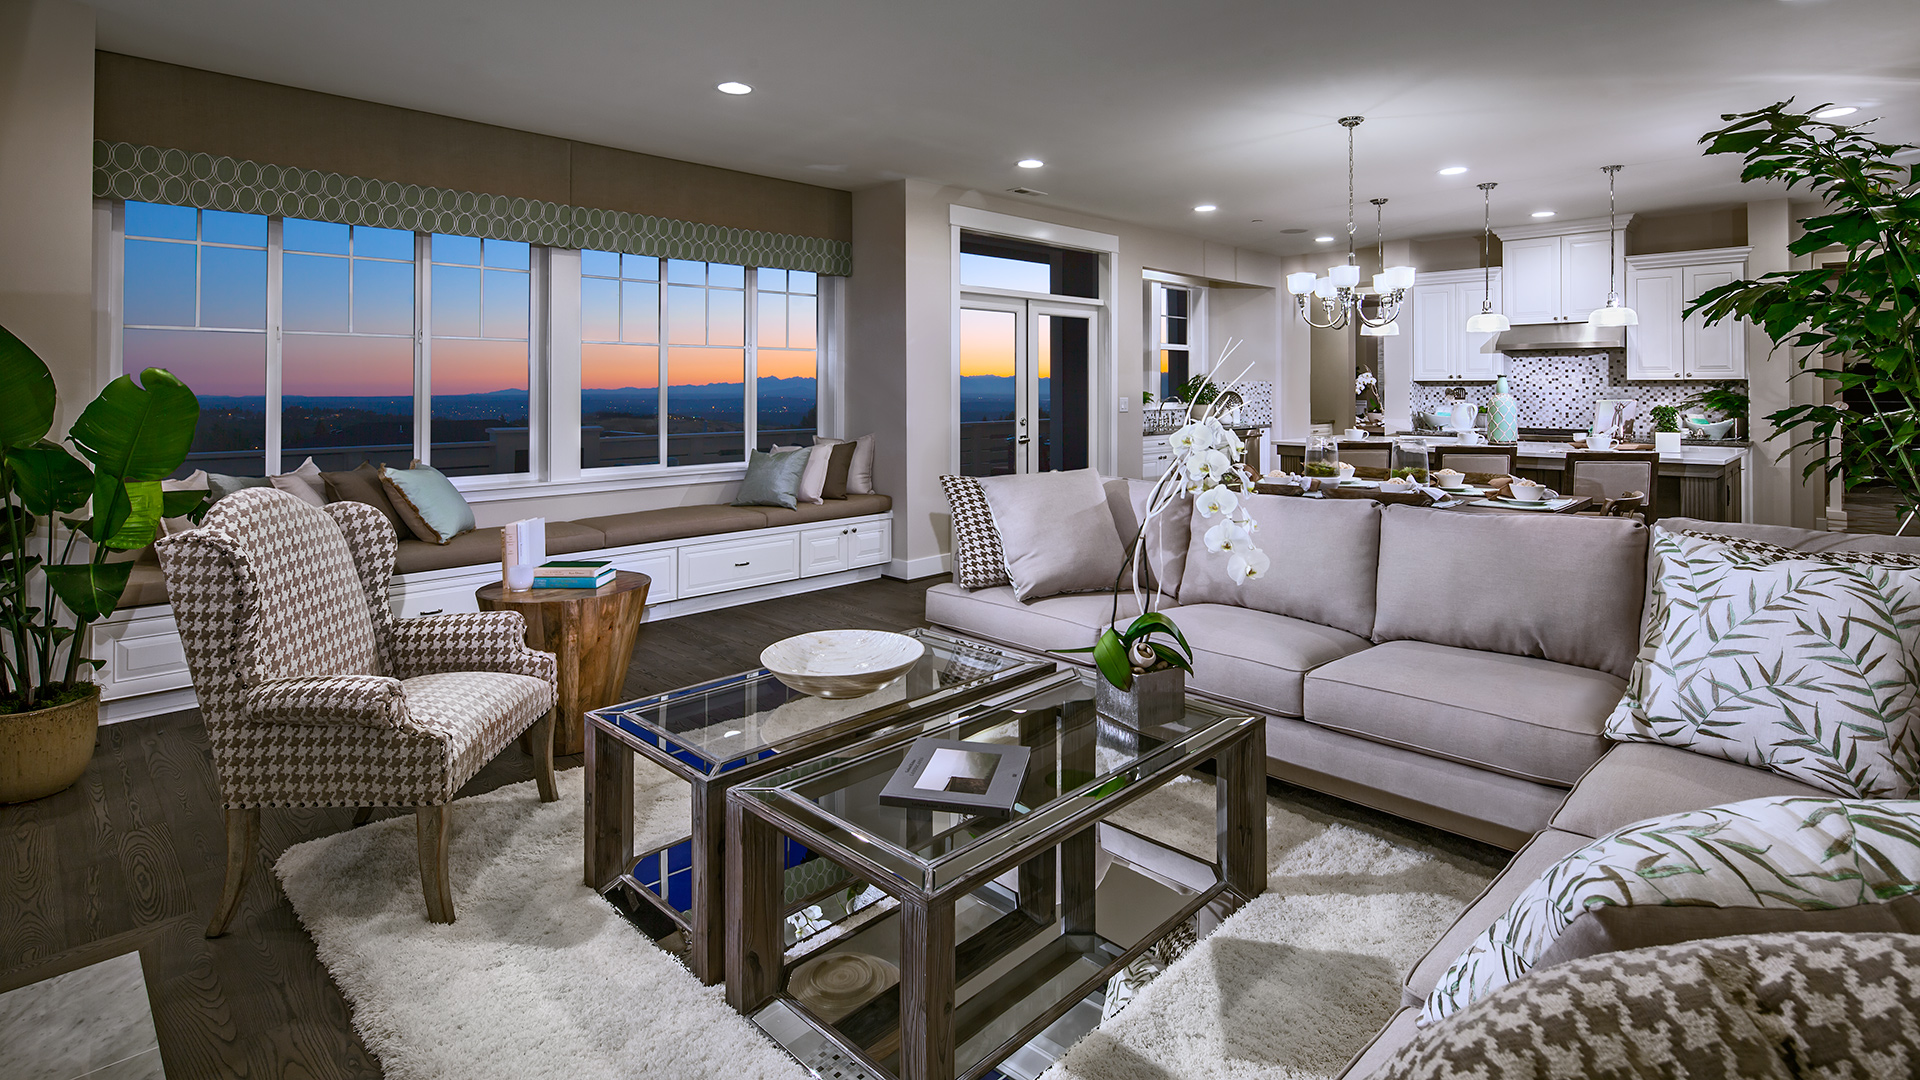 The Ious Great Room Of Elinor Home Design Leads To Oversized Balcony Ideal For Taking In Sweeping Views